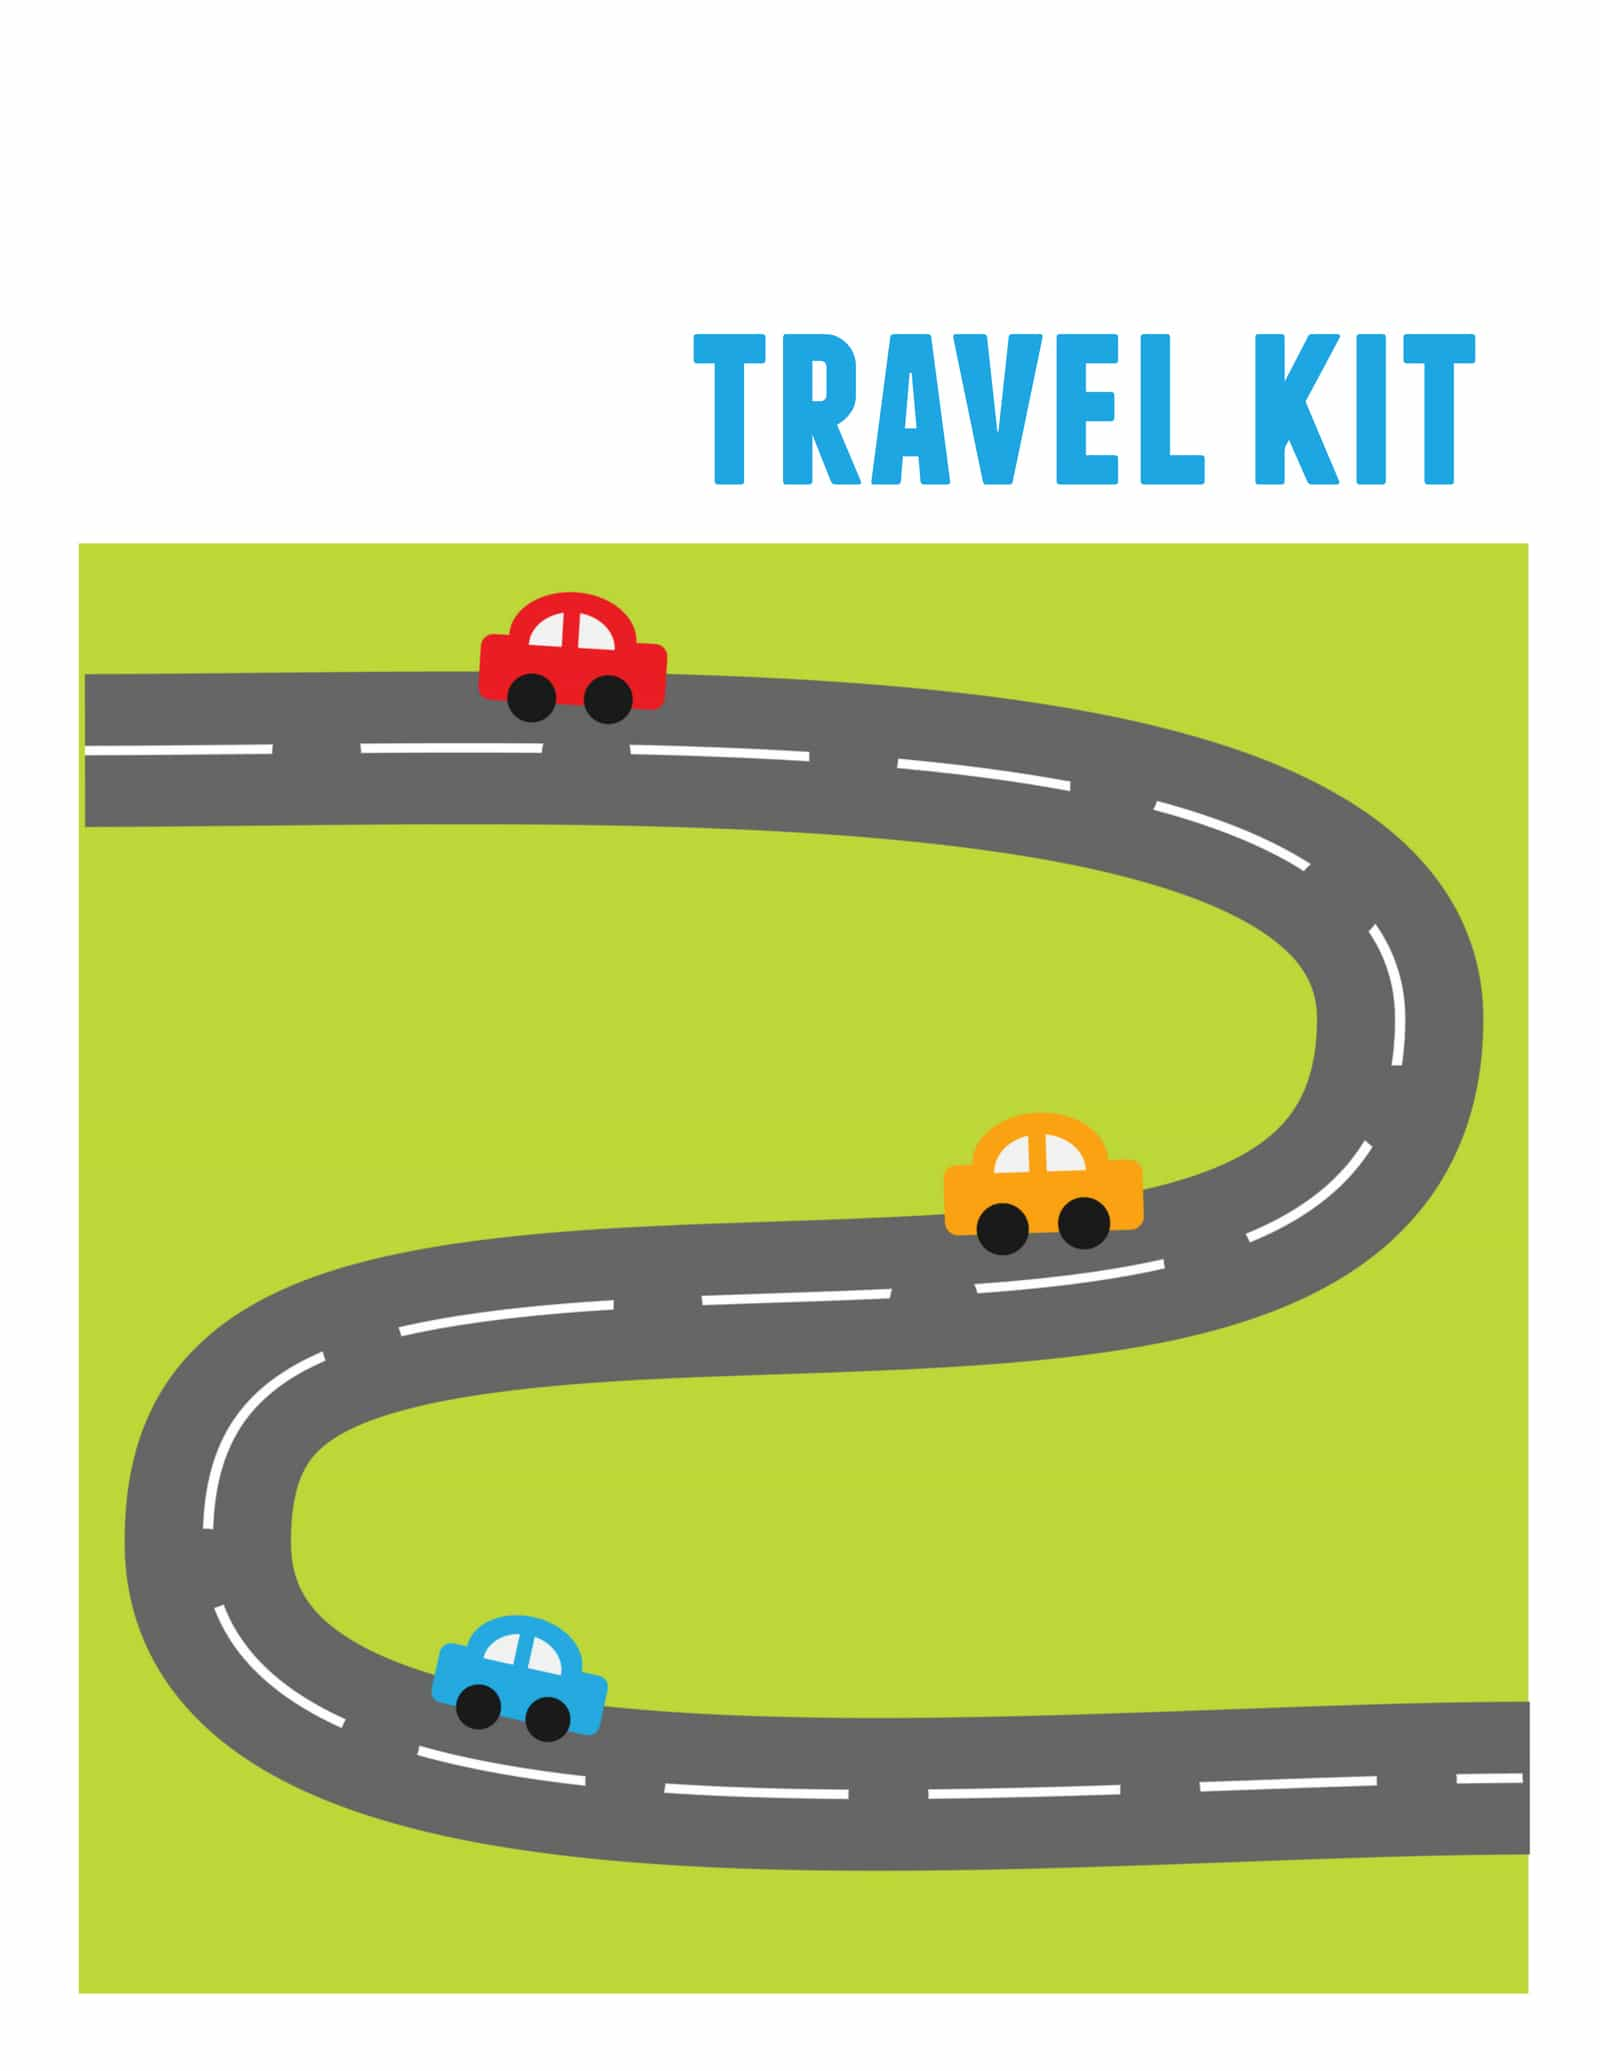 free printable kids travel kit template how to make a simple kids travel kit binder - Free Kids Printable Activities